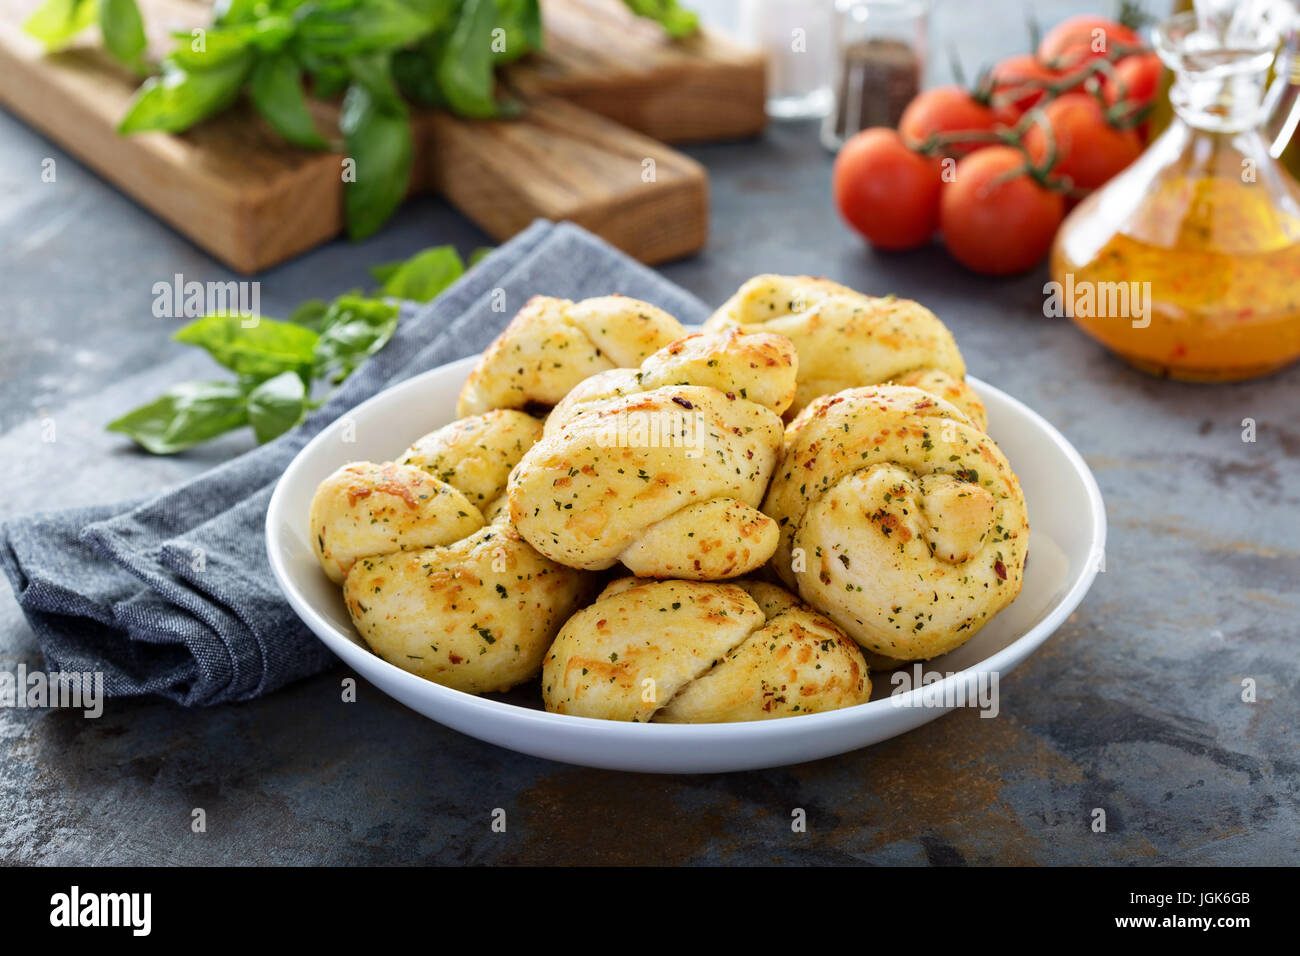 Garlic and cheese dinner rolls - Stock Image